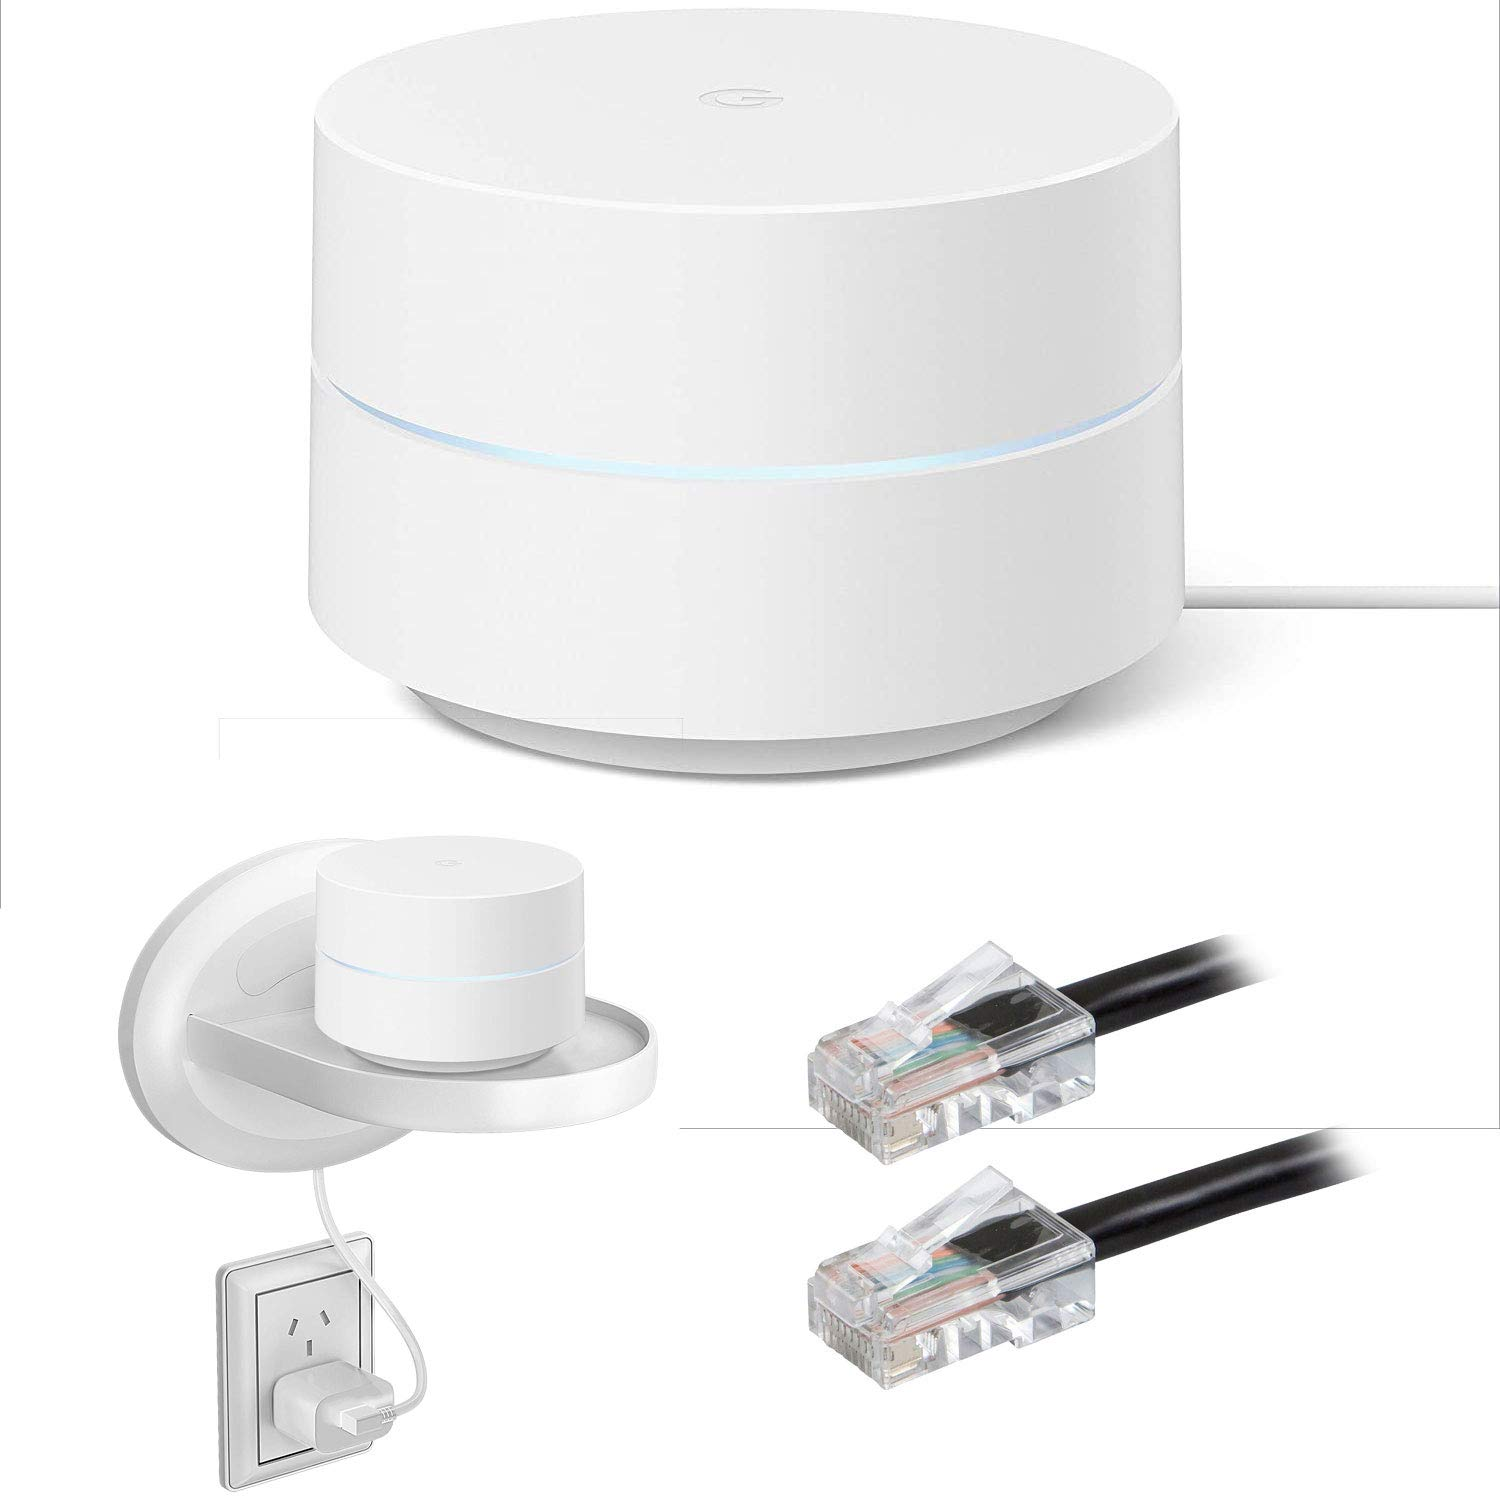 Google Wi-Fi System Mesh Router 1-Pack (GA00157-US) Bundle with Deco Gear Wall Mount Shelf Stand for Google Wi-Fi & Home and ZERObootCat6 Ethernet Patch Cable